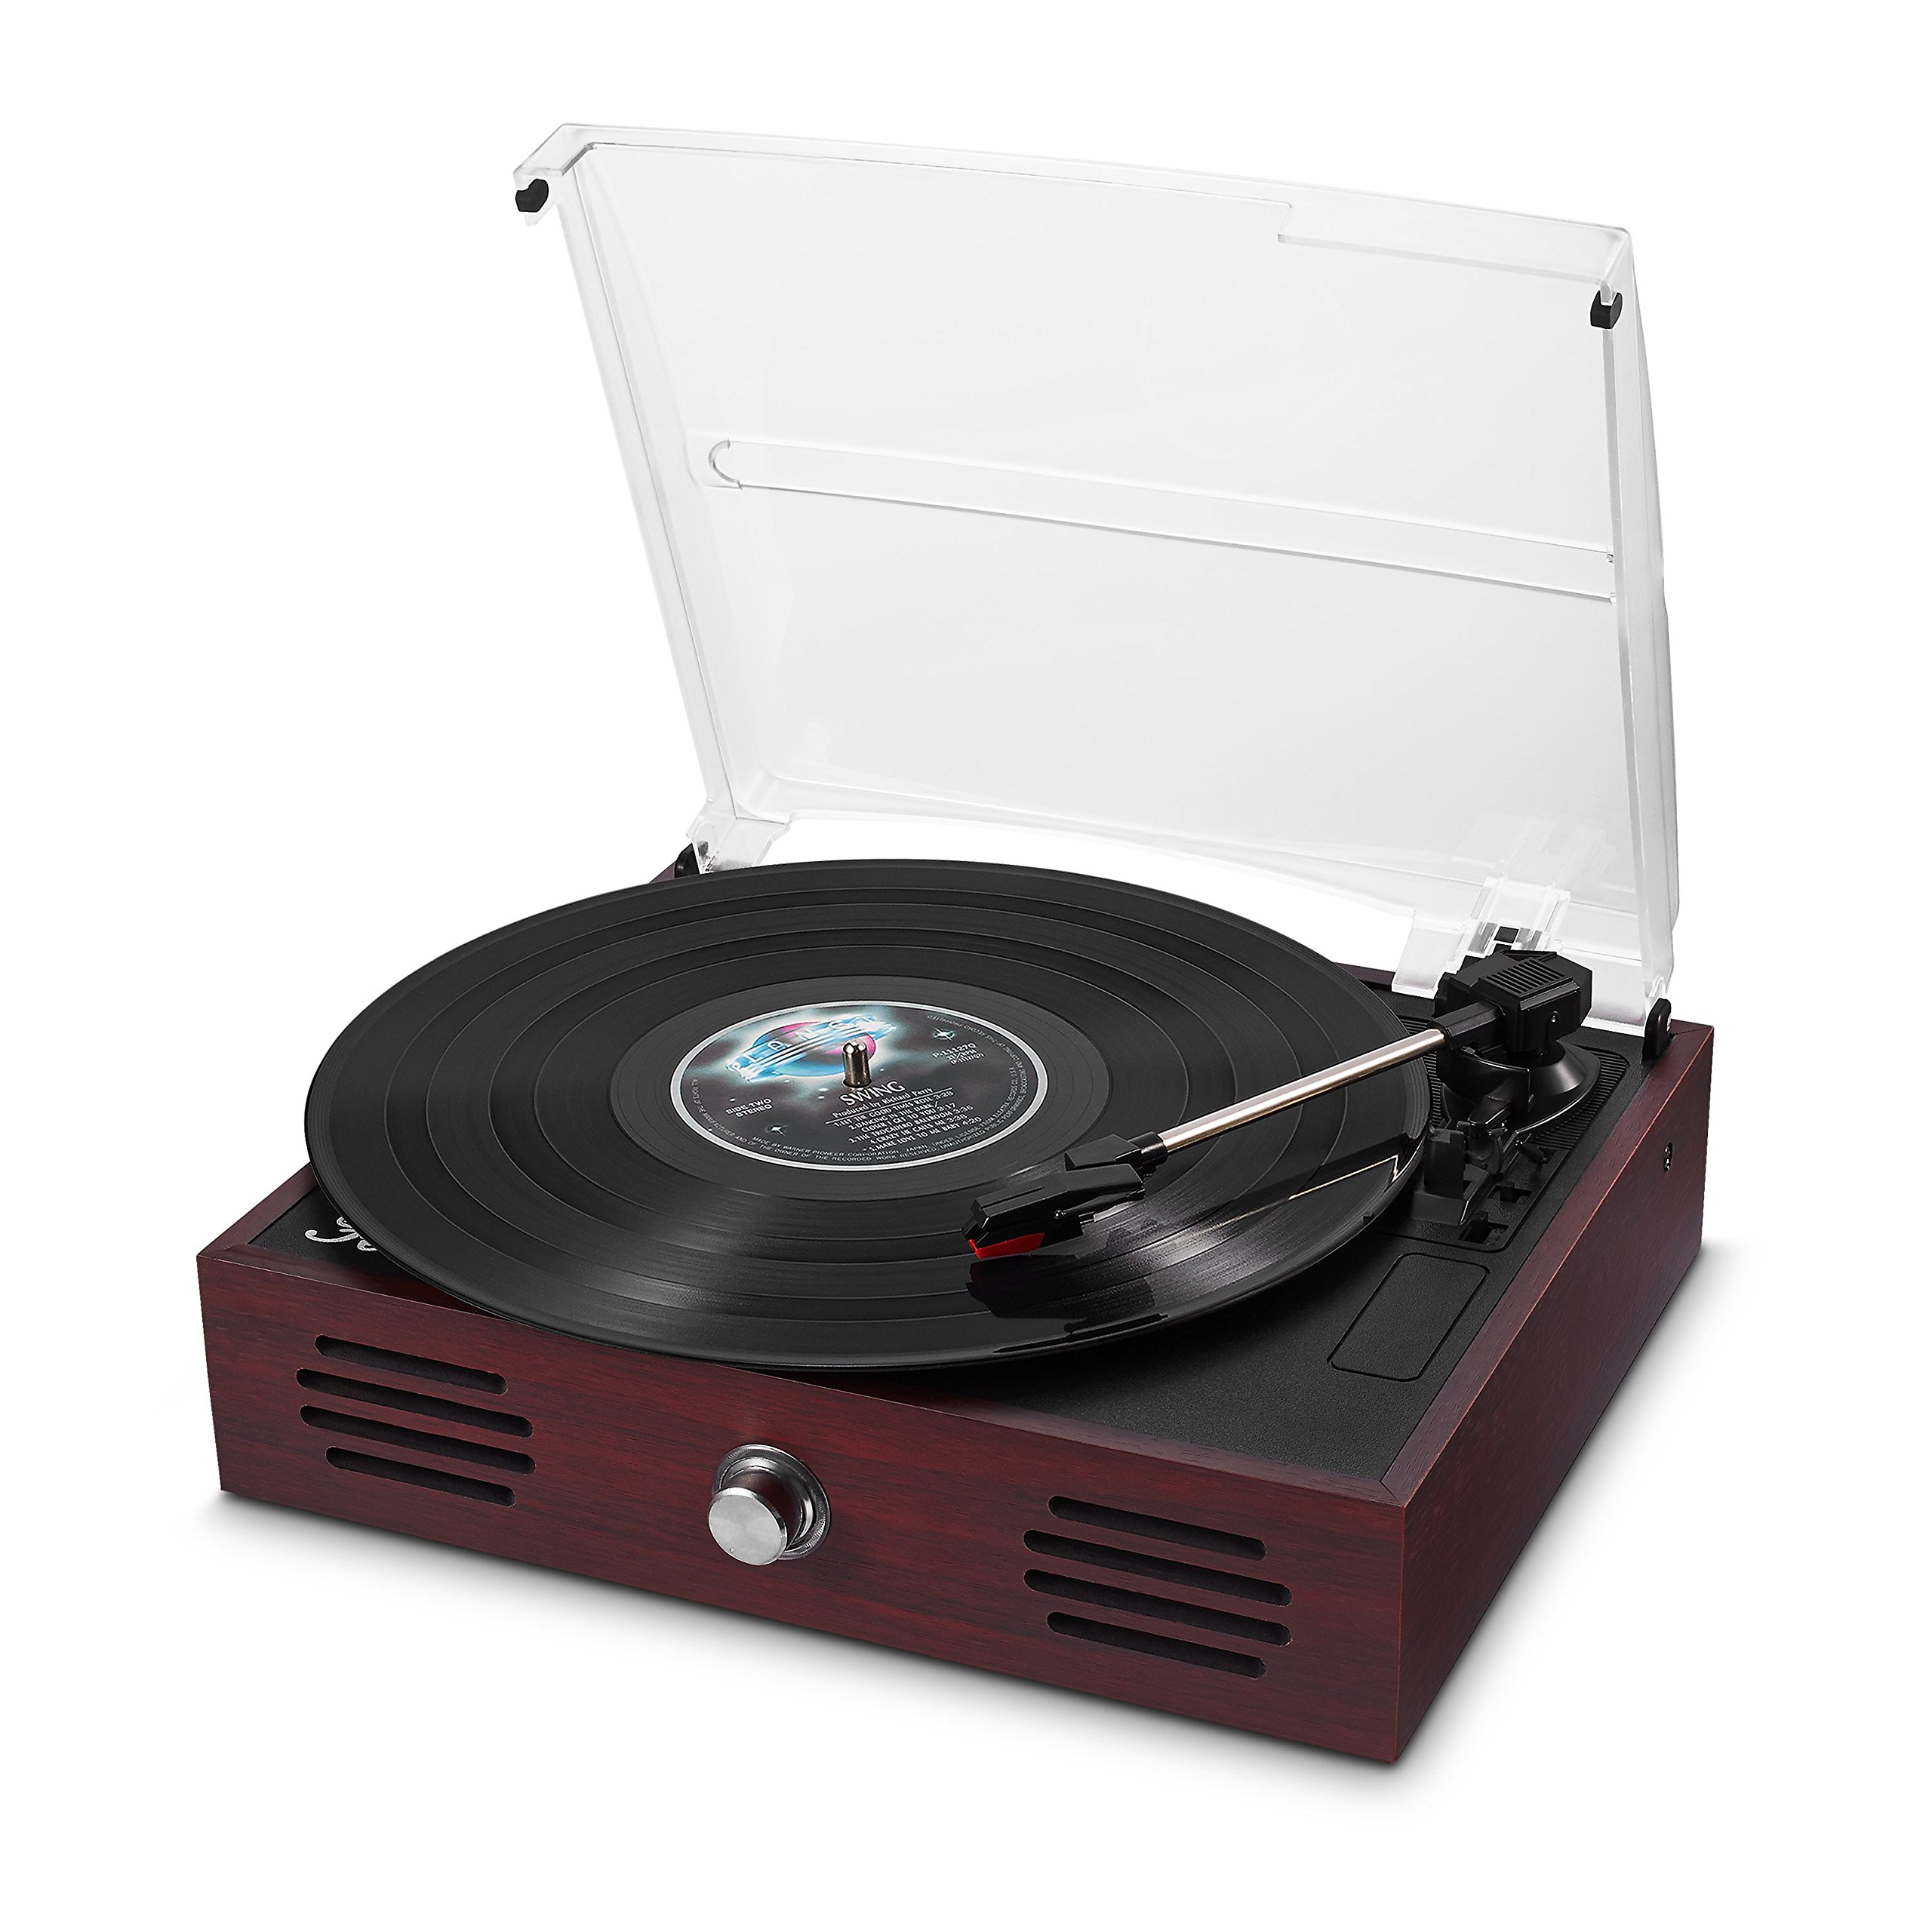 Belt-Drive 3 Speed Retro Turntable Portable Wooden Suitcase LP Vinyl Record Player with Built-in Stereo Speakers